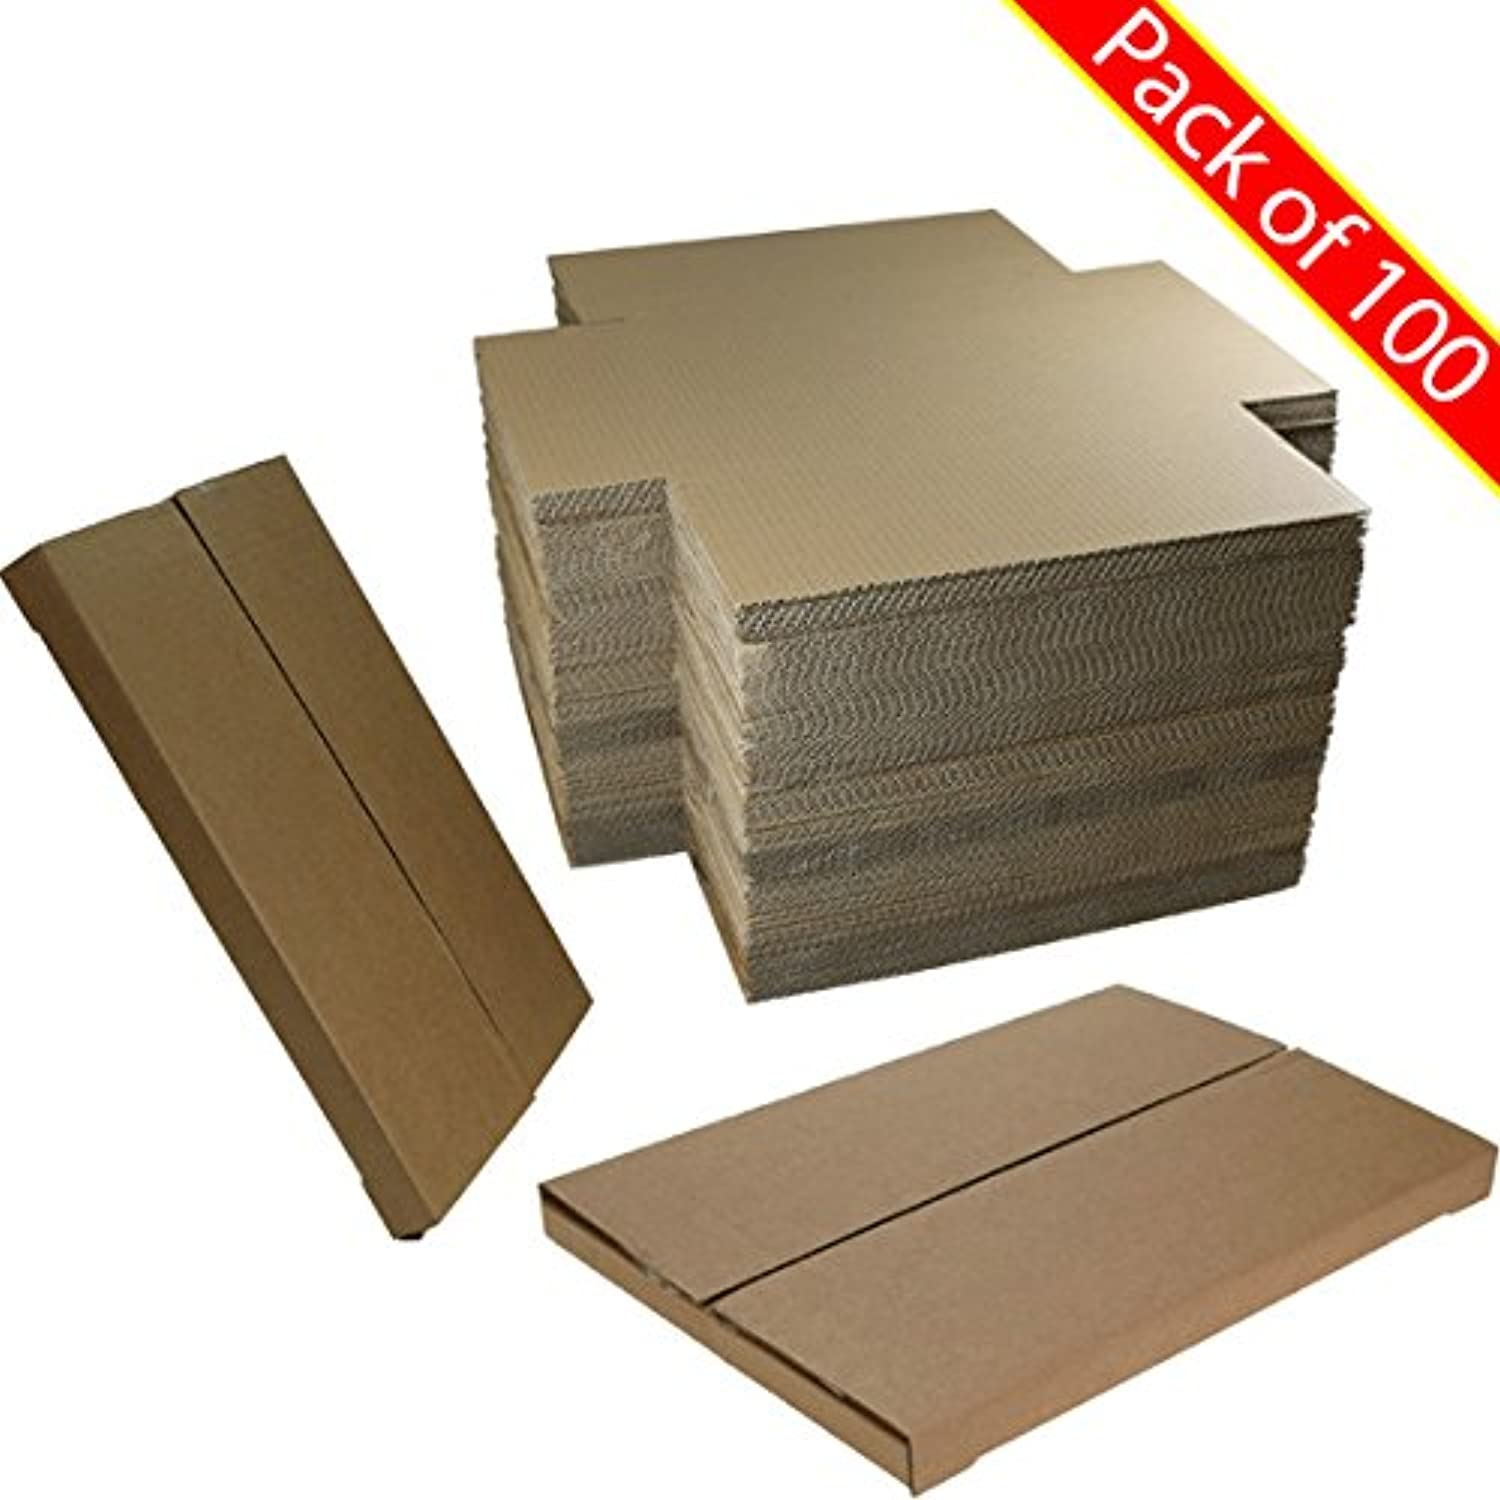 DieCut Postal Mailing Cardboard Boxes  Pack of 100